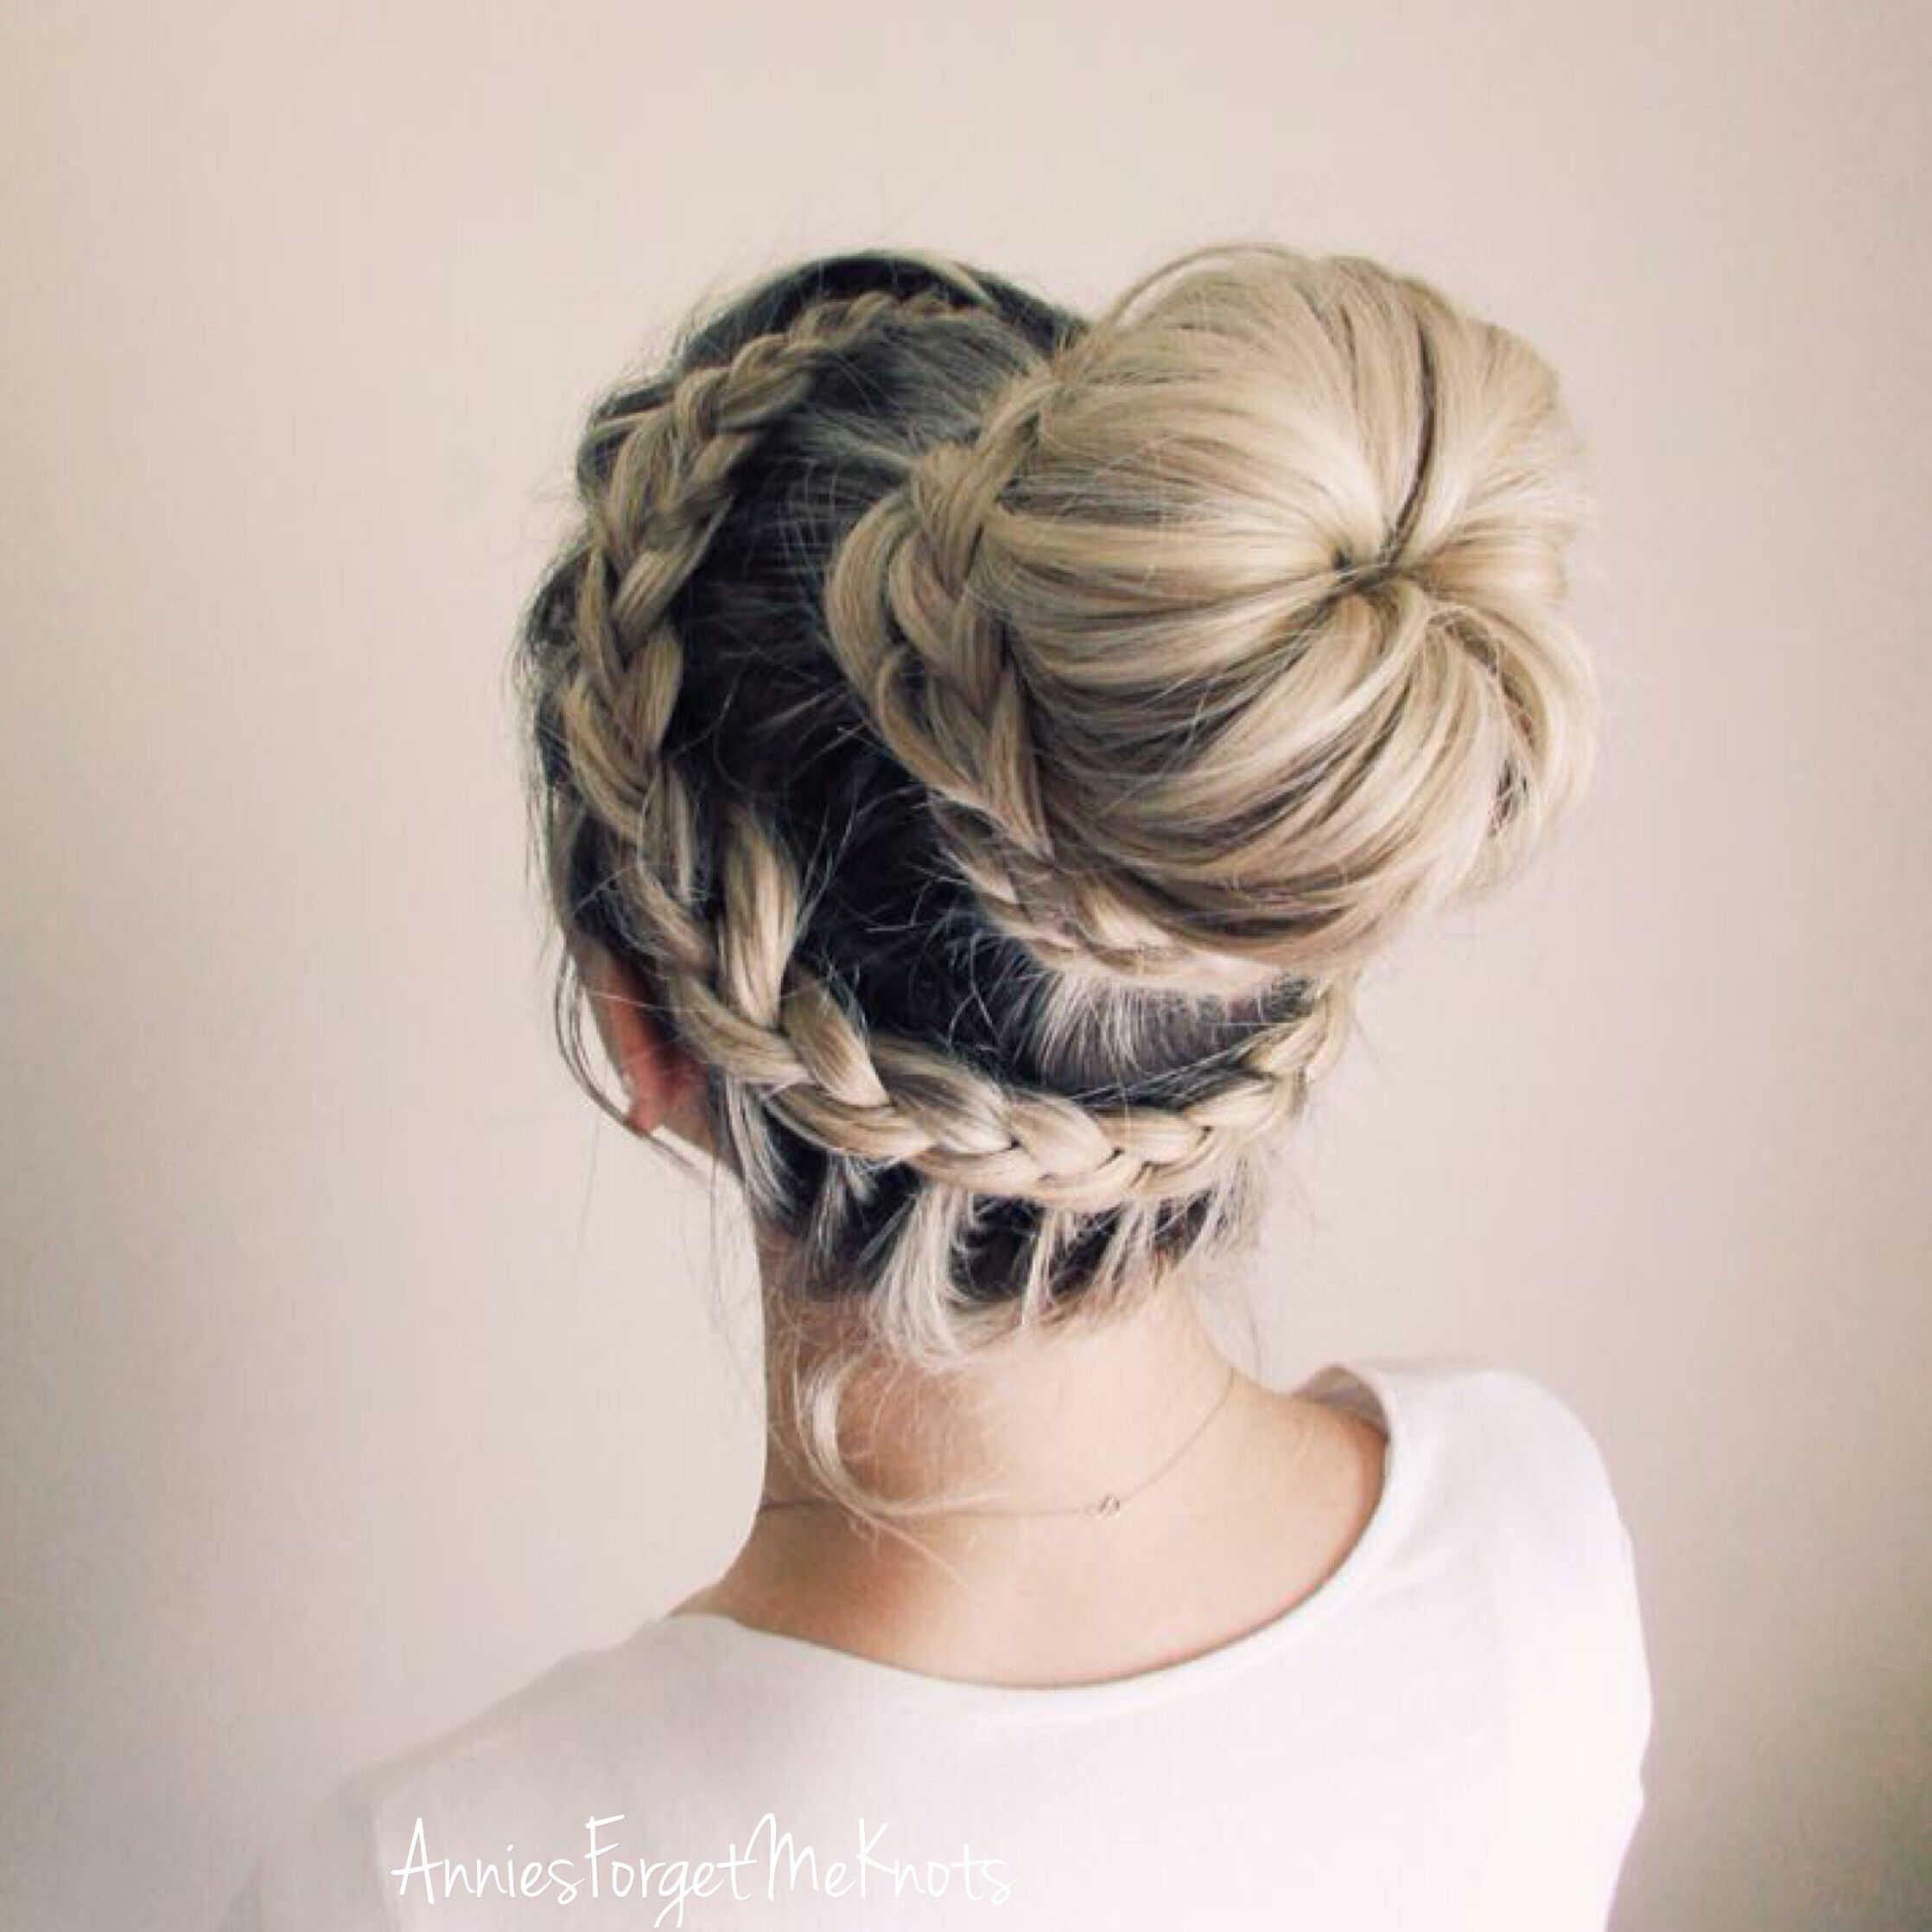 Crown Braid Wedding Hairstyles: How To: Lace Dutch Crown Braid + Lace Dutch Braided Bun